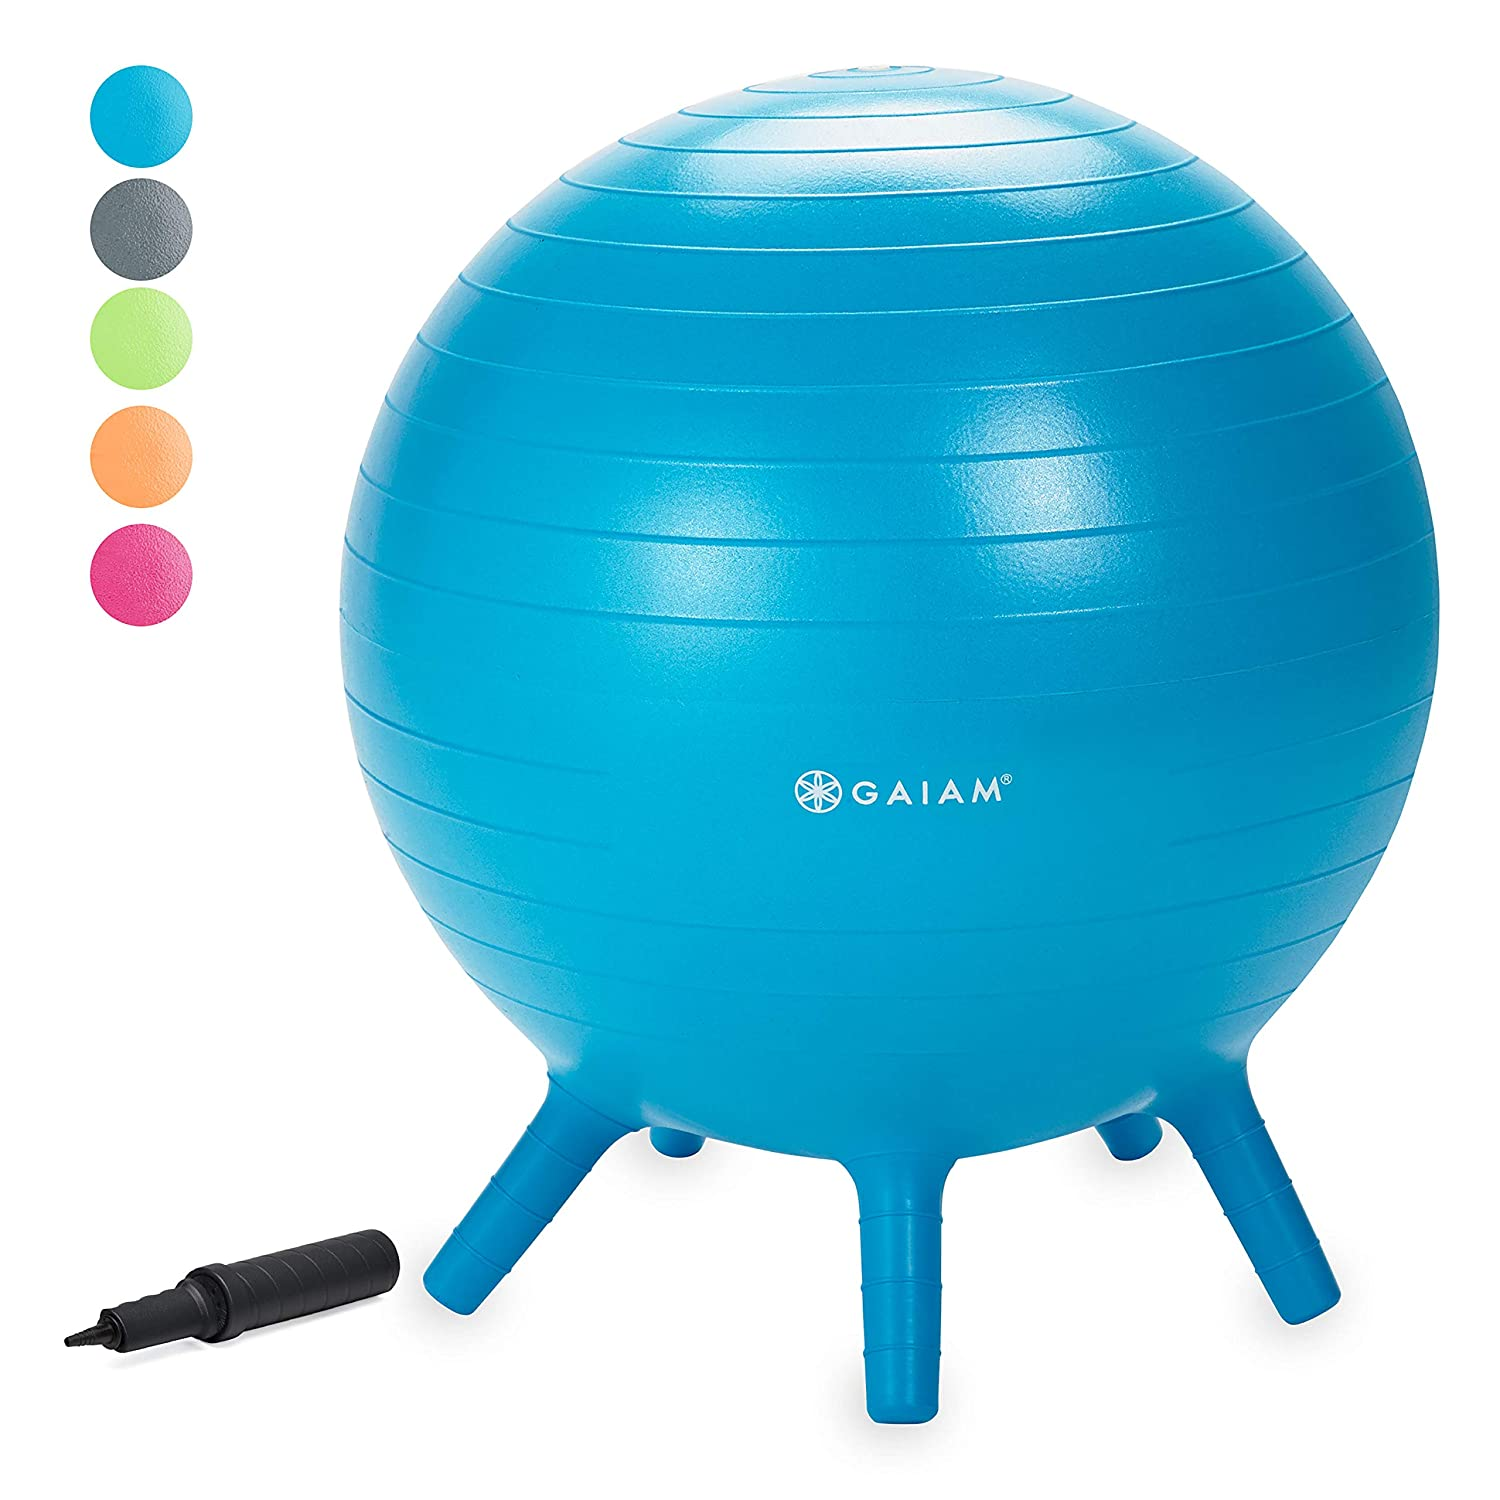 Remarkable Gaiam Kids Stay N Play Childrens Balance Ball Flexible School Chair Active Classroom Desk Seating With Stay Put Stability Legs Includes Air Pump Caraccident5 Cool Chair Designs And Ideas Caraccident5Info